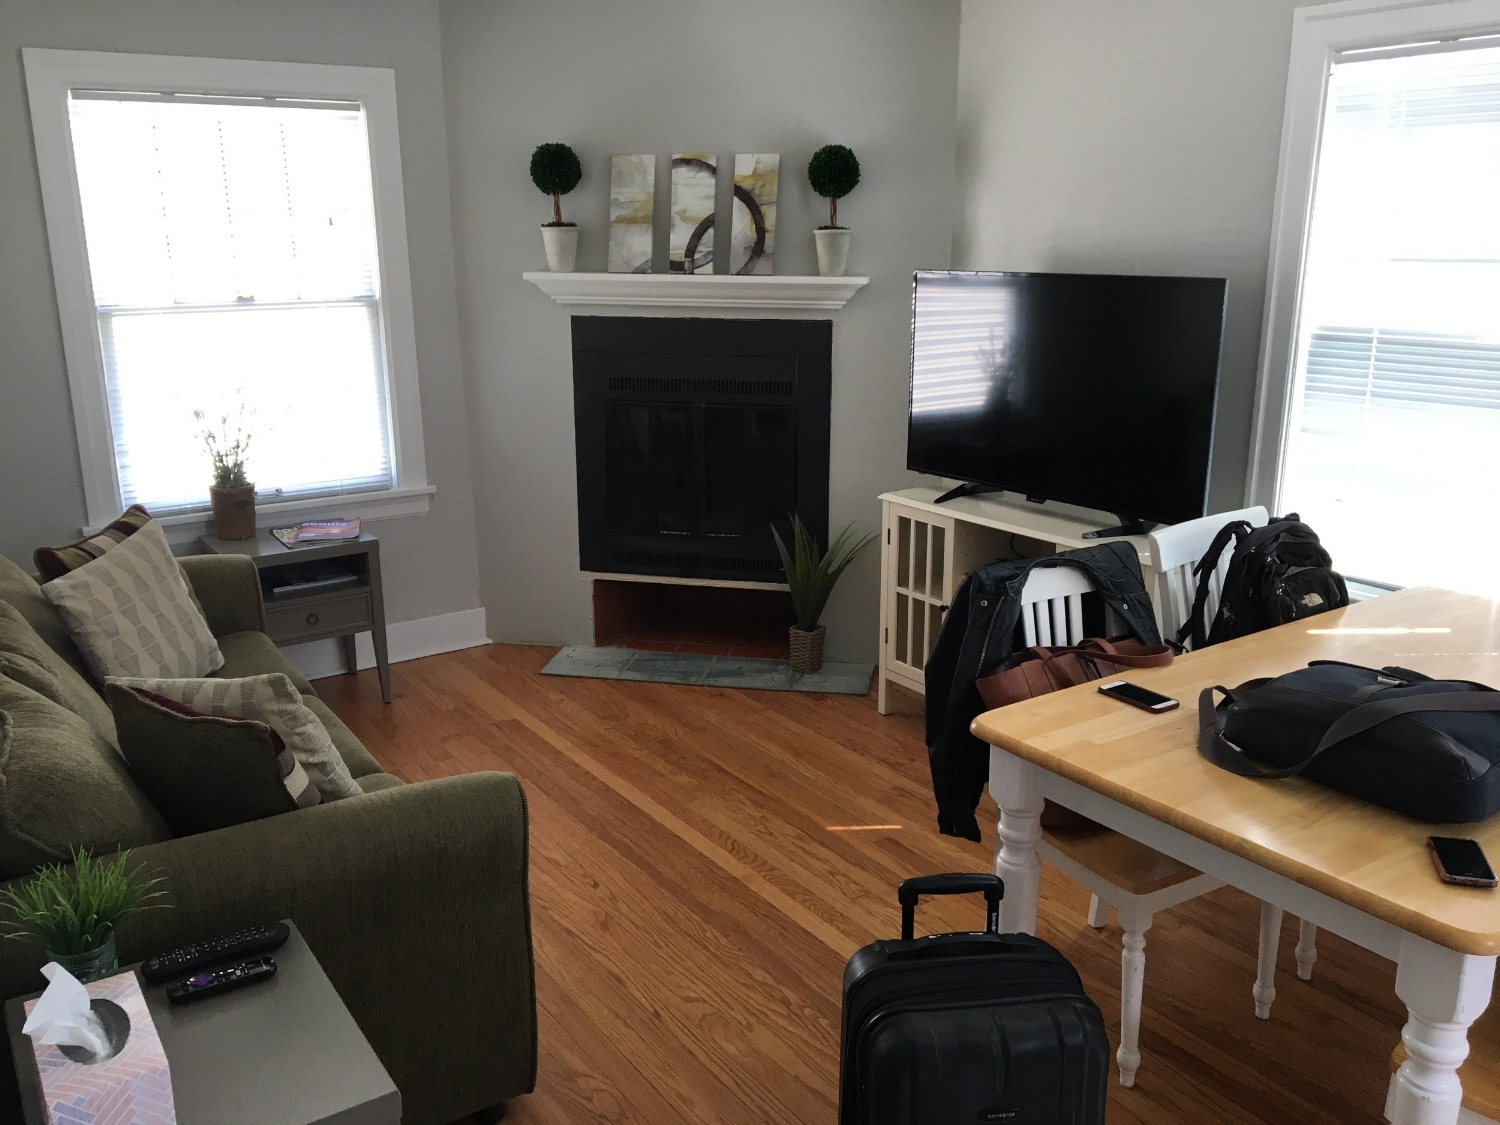 AIR BNB SEATTLE, WASHINGTON